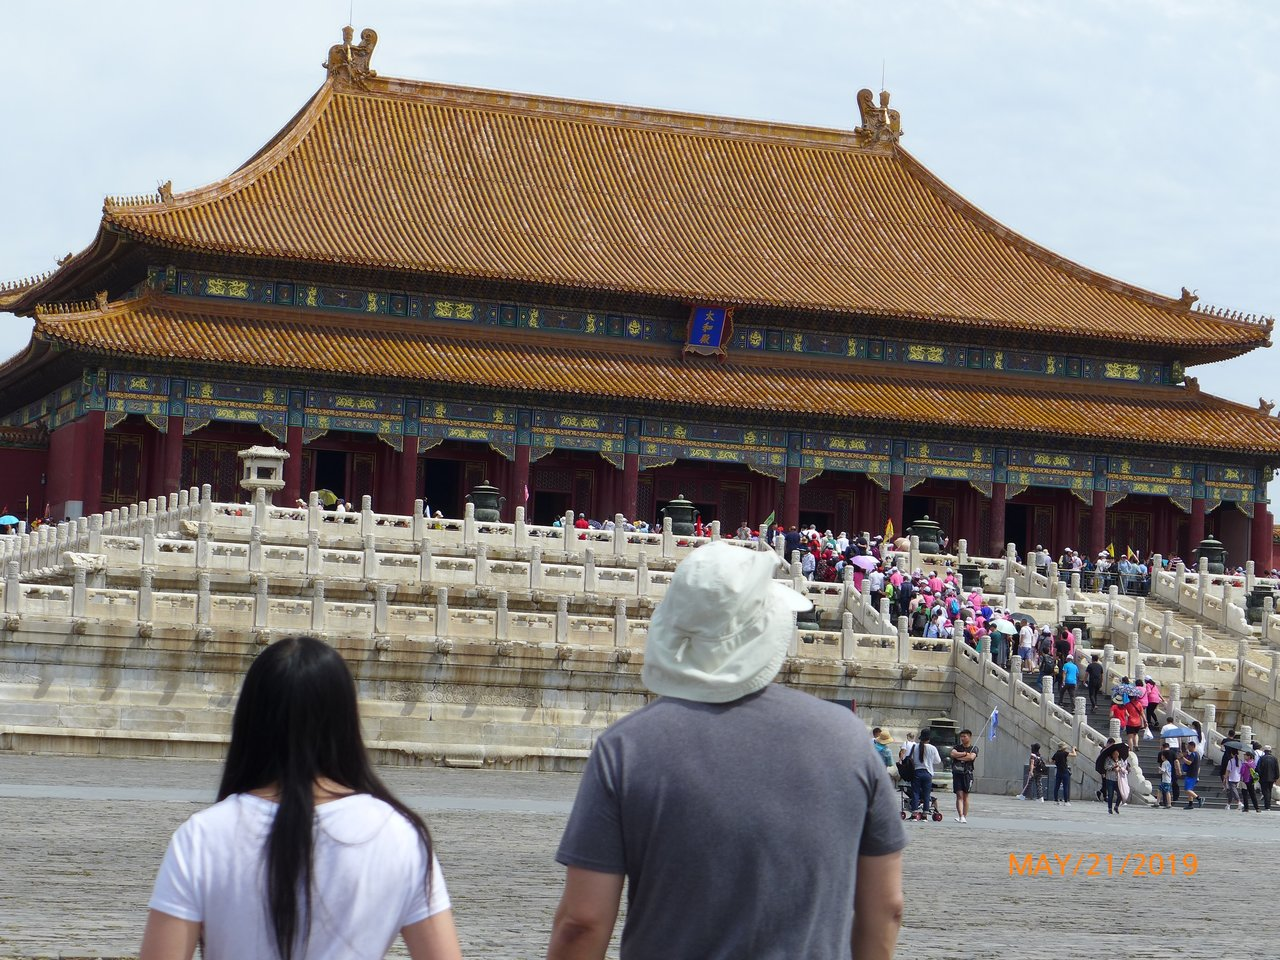 Forbidden City | Photo taken by Shiru H